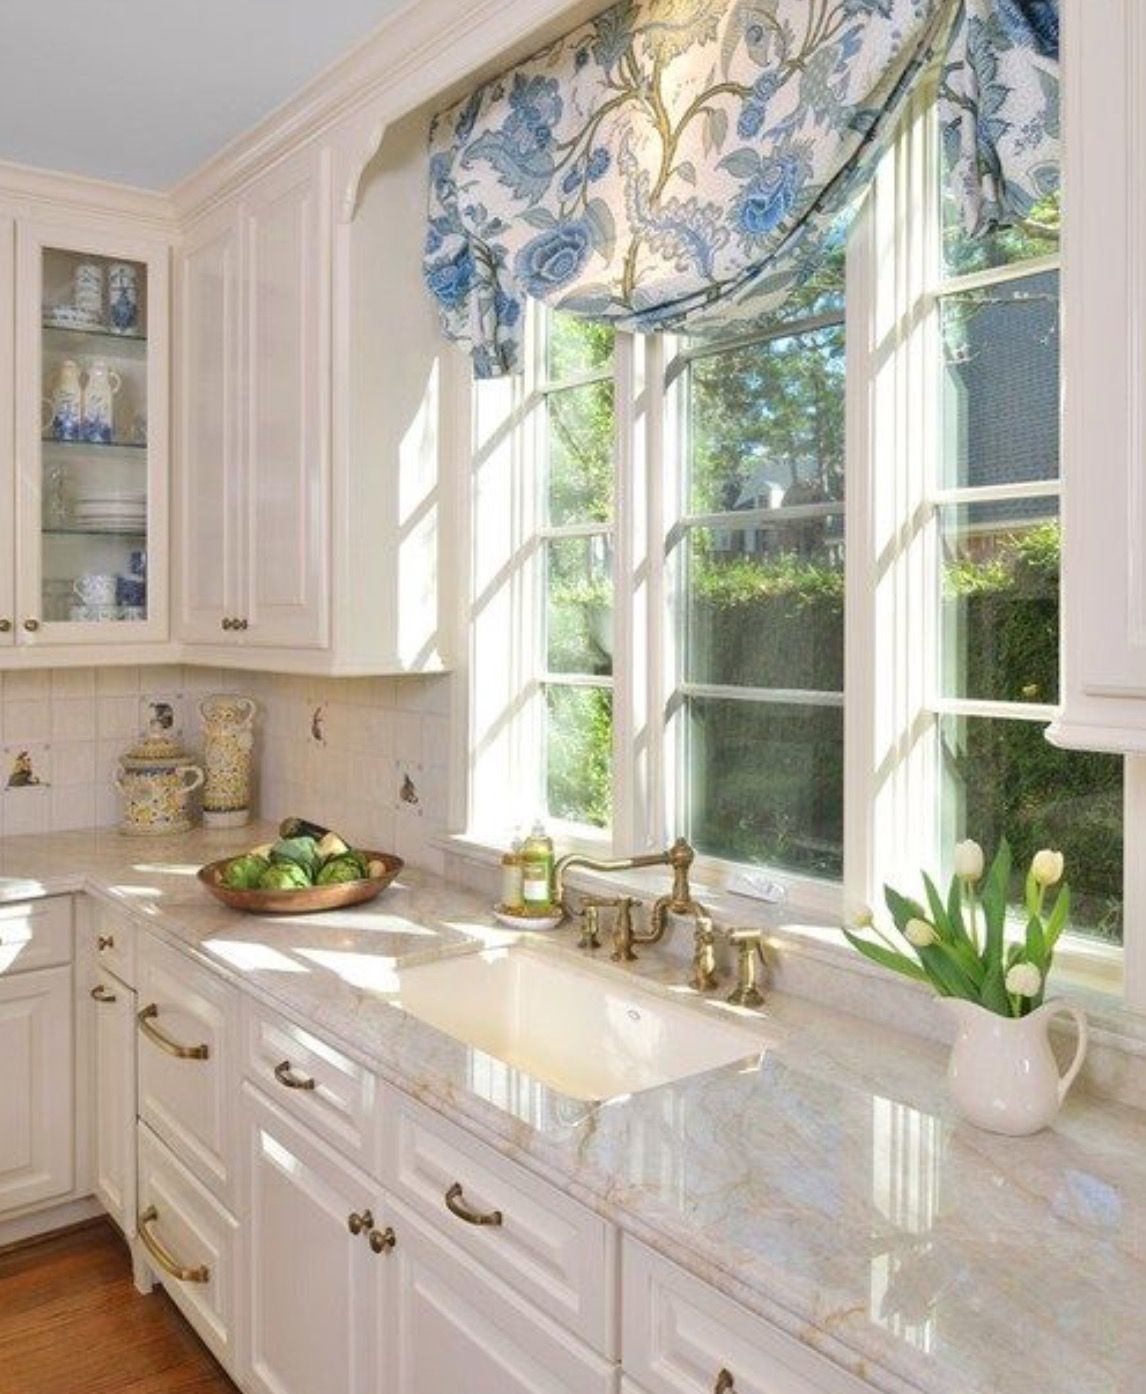 Kitchen Curtains With White Cabinets: Blue, White, Brass, Marble Kitchen. Blue Ceiling